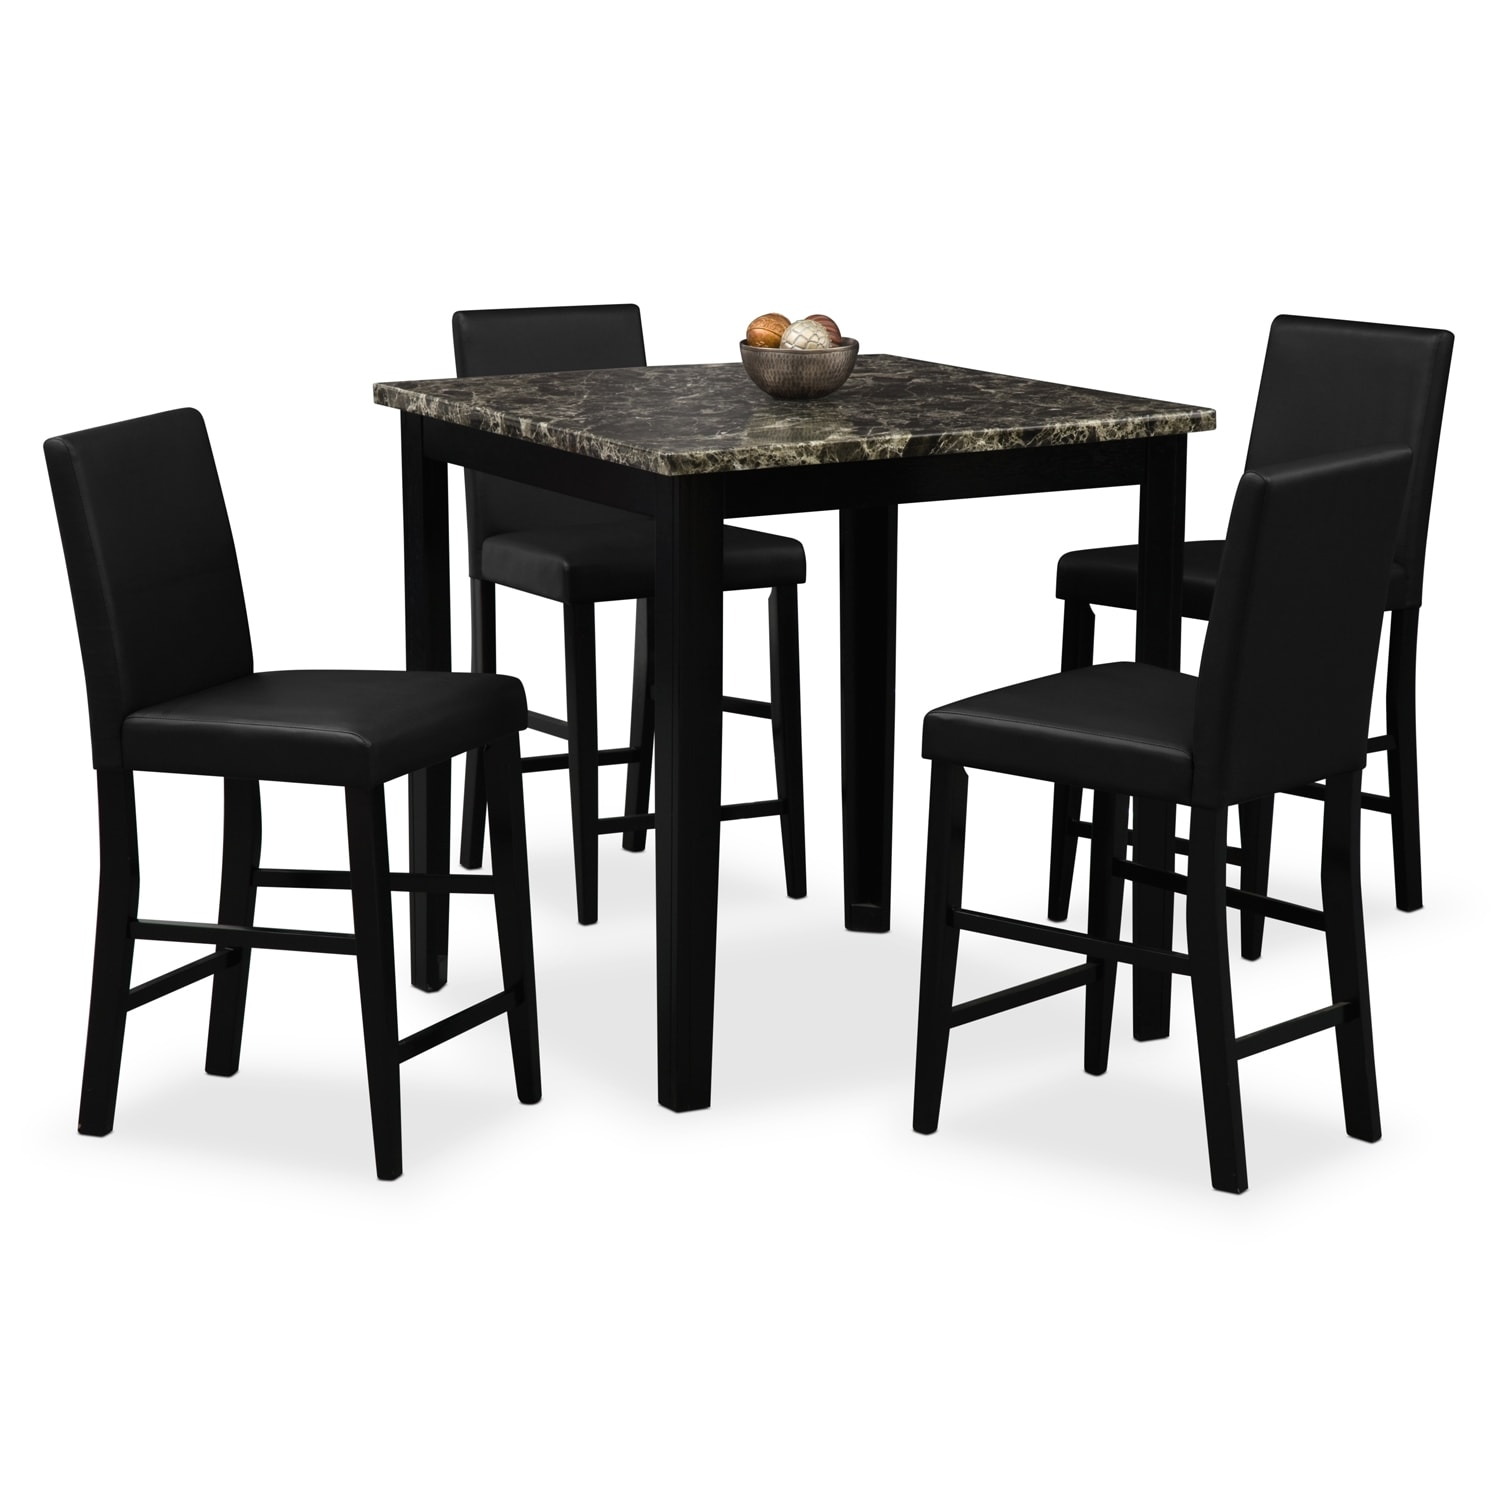 Shadow ii 5 pc counter height dinette value city furniture for 2 dining room chairs